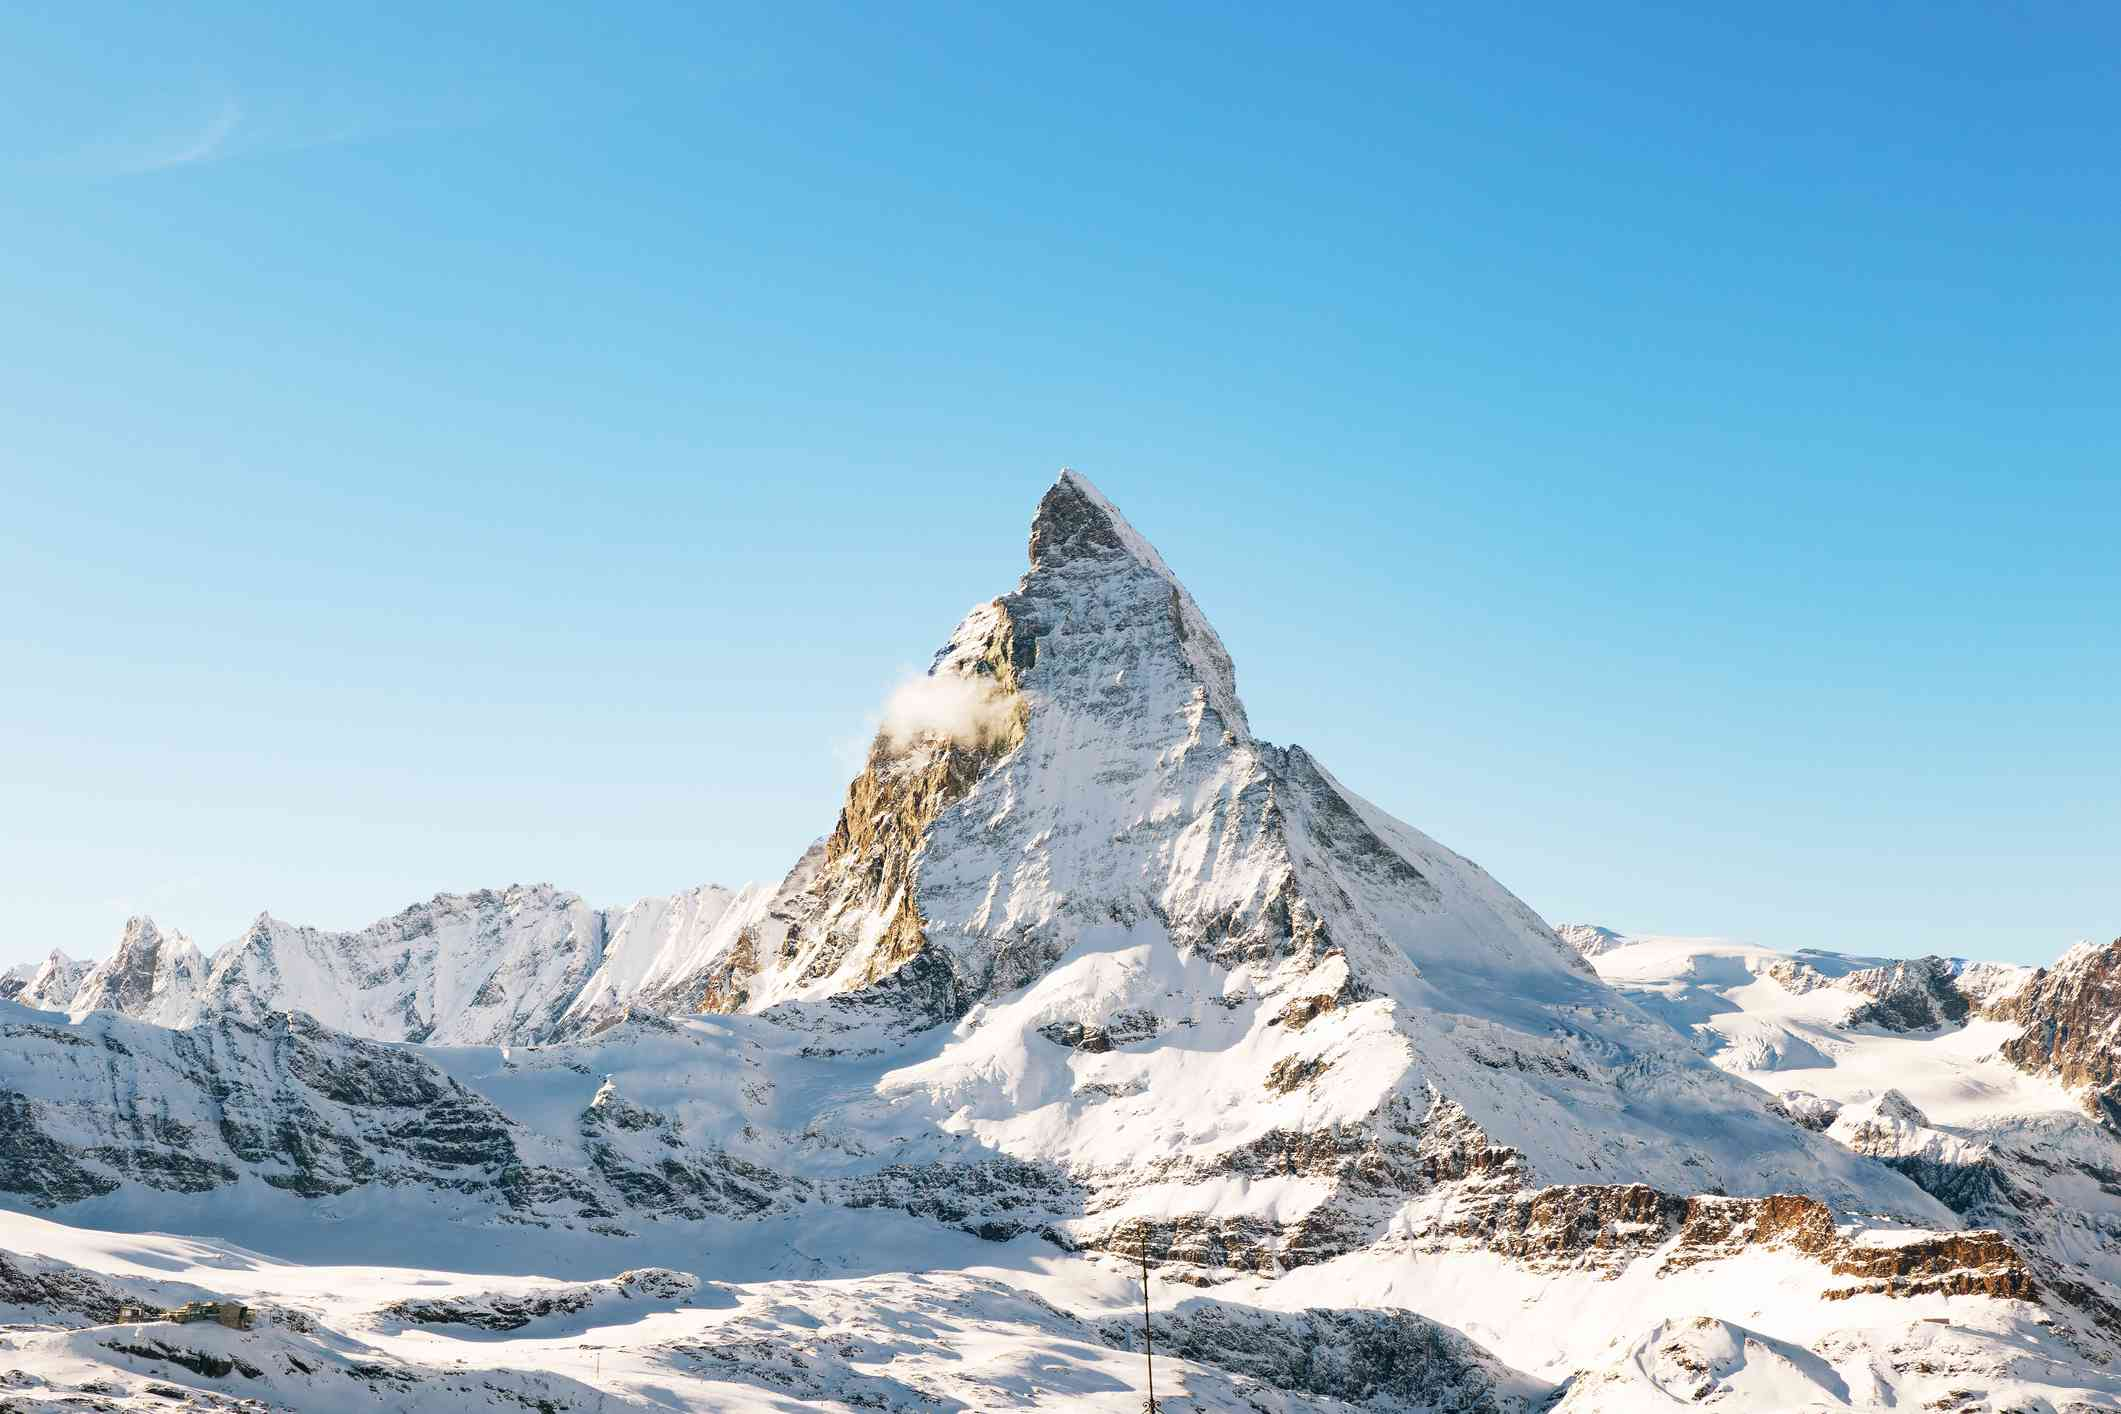 Panorama of the Matterhorn mountain range, covered with fresh snow, and blue sky in the cloudless background. Christmas season, winter and ski slopes on the Swiss Alps.